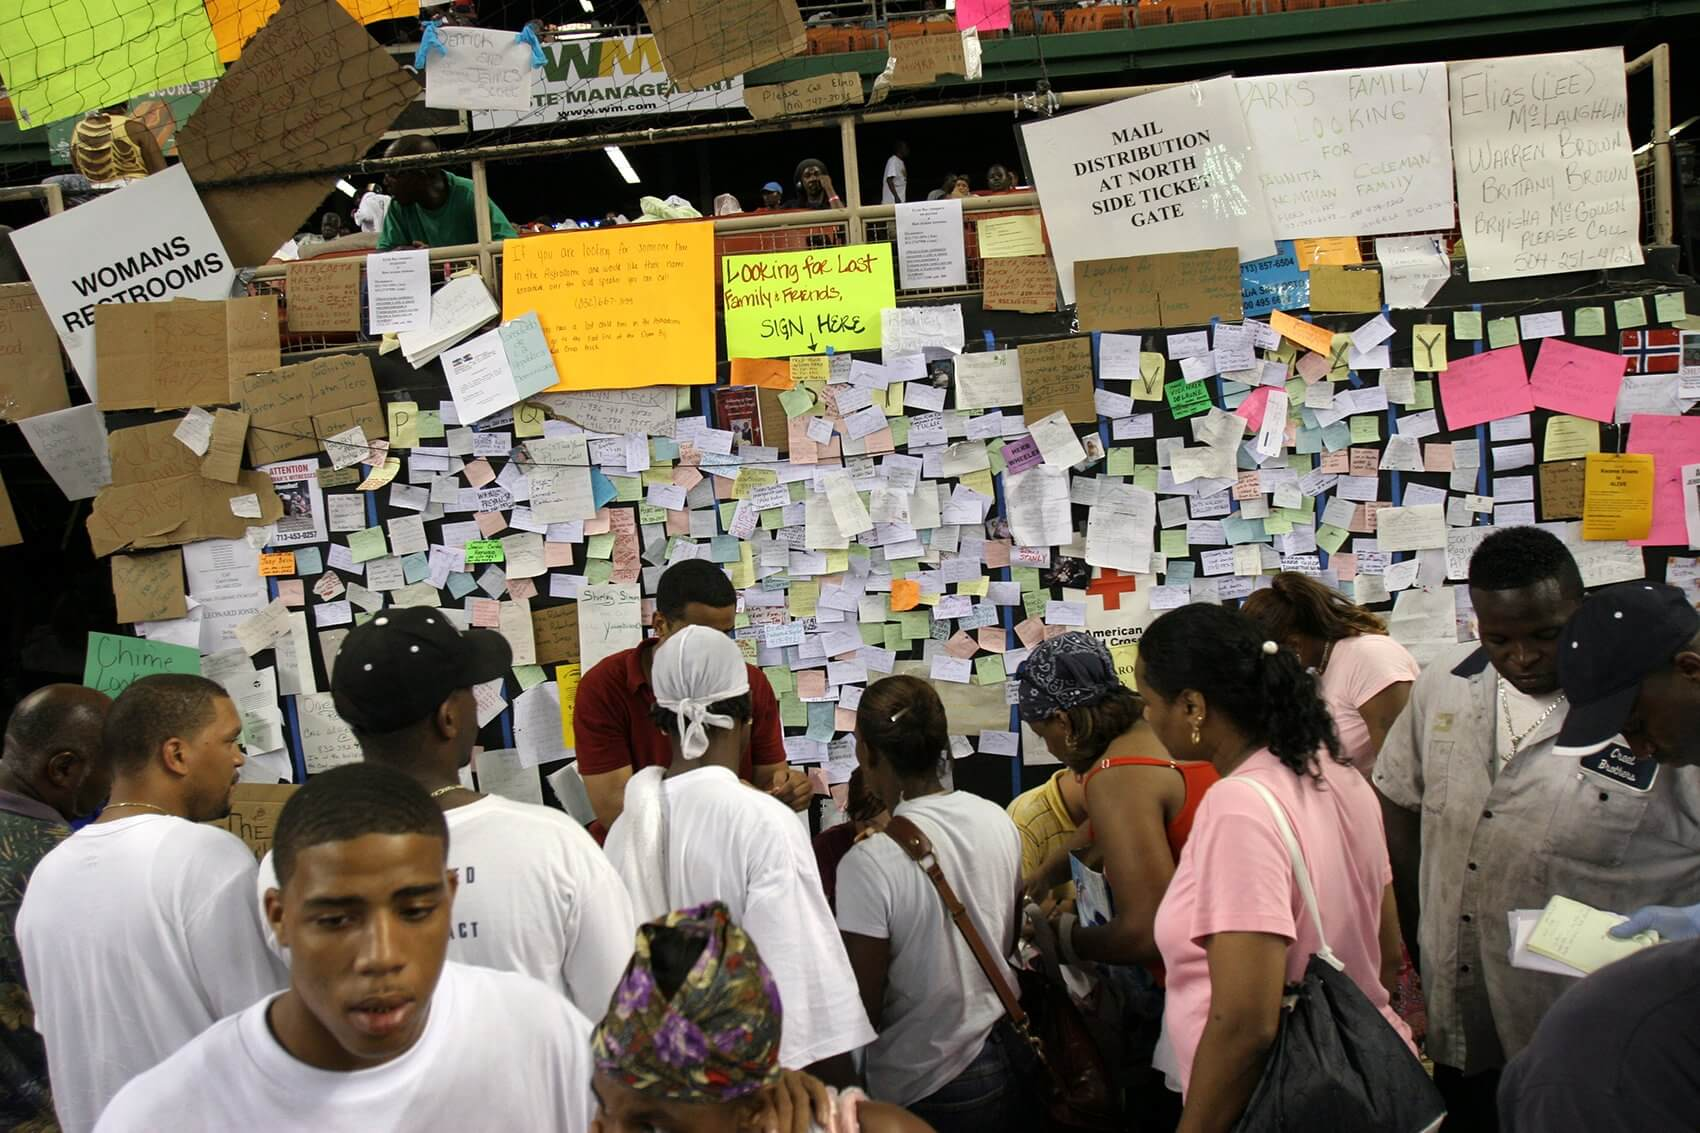 Thousands of names of missing loved ones are tacked to a board at the Astrodome. (Photo courtesy Texas Children's Hospital)